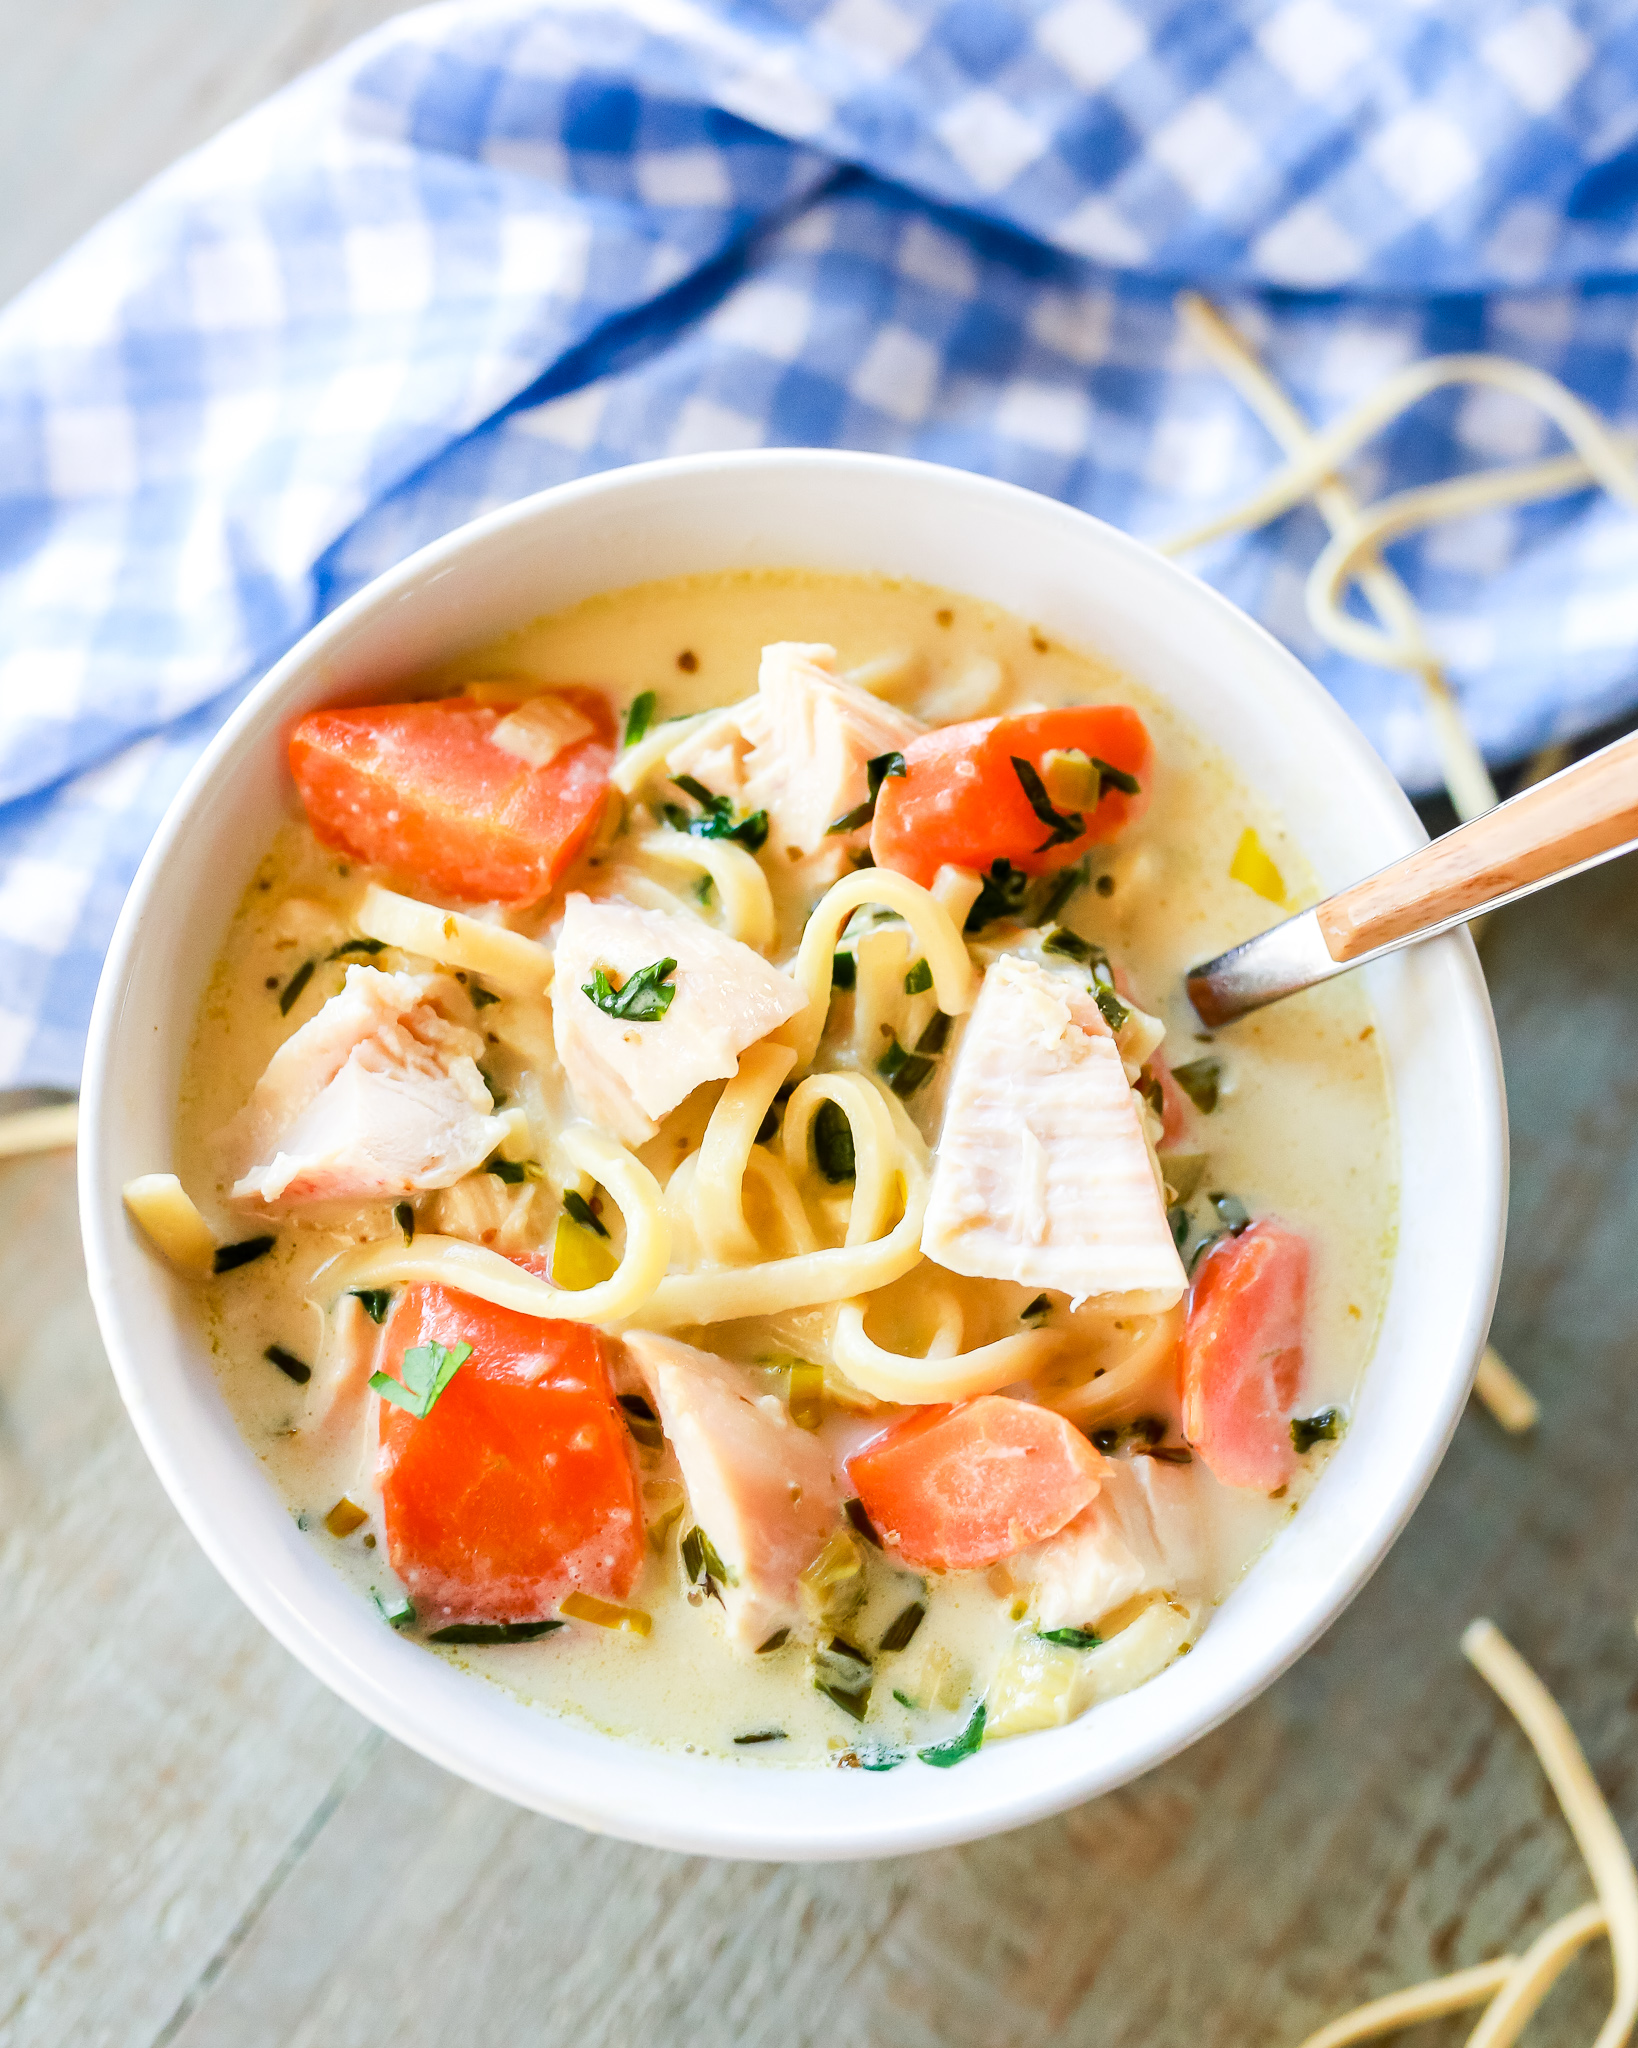 Thick and heart super delicious creamy rotisserie chicken noodle soup recipe